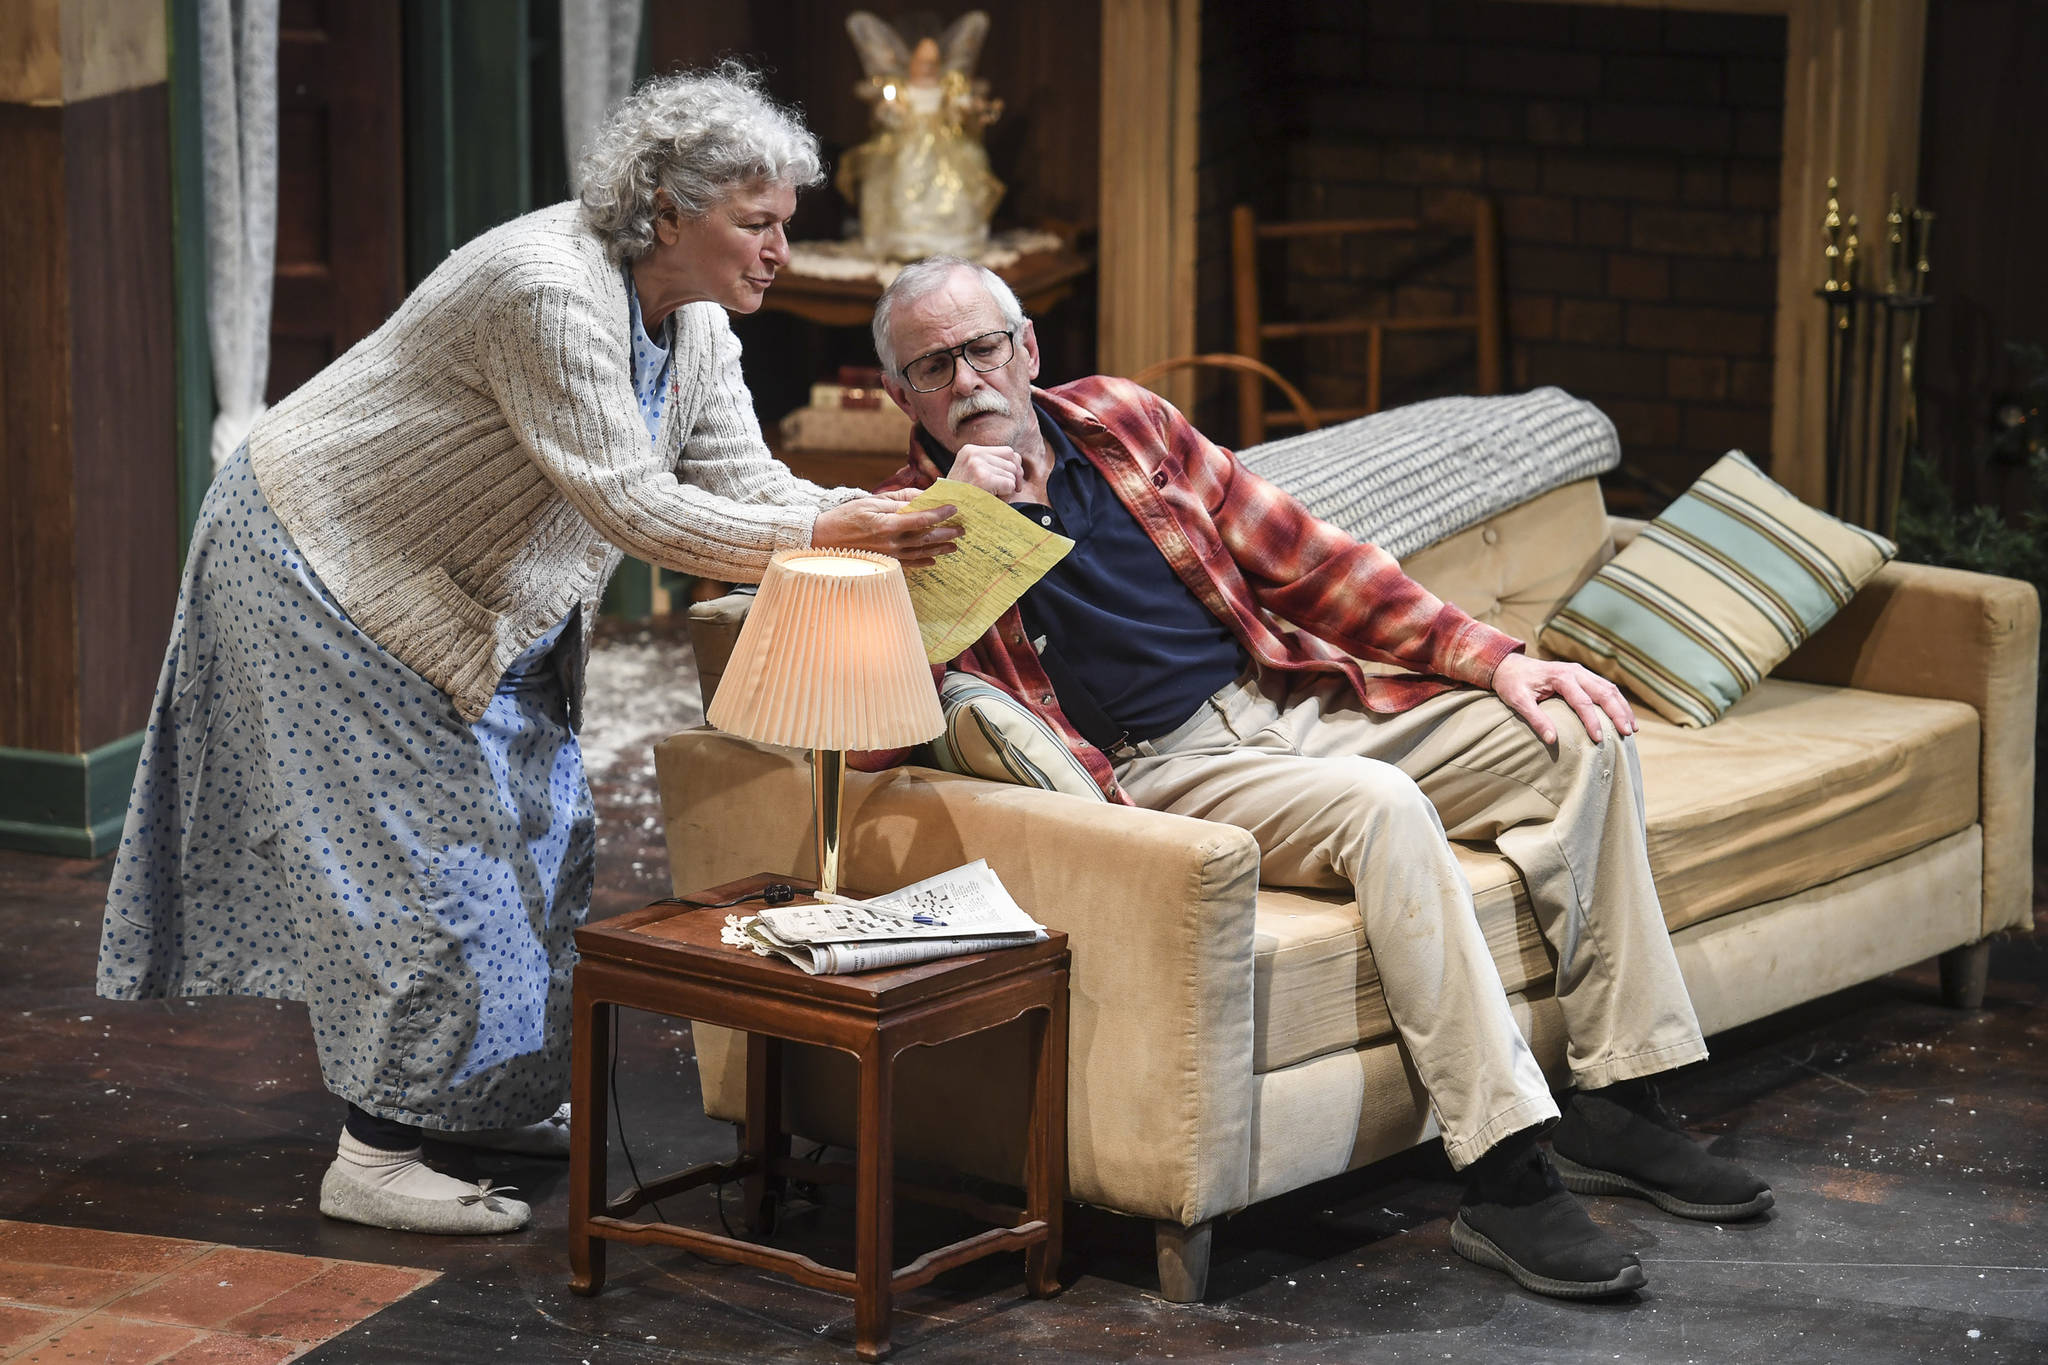 """Clifford, played by Charlie Cardwell, and Minnie, played by Angelina Fiordellisi, rehearse in Perseverance Theatre's production of """"With"""" by playwright Carter Lewis on Tuesday, Nov. 19, 2019. """"With"""" opens Friday Nov. 22 and runs through Dec. 15. (Michael Penn 